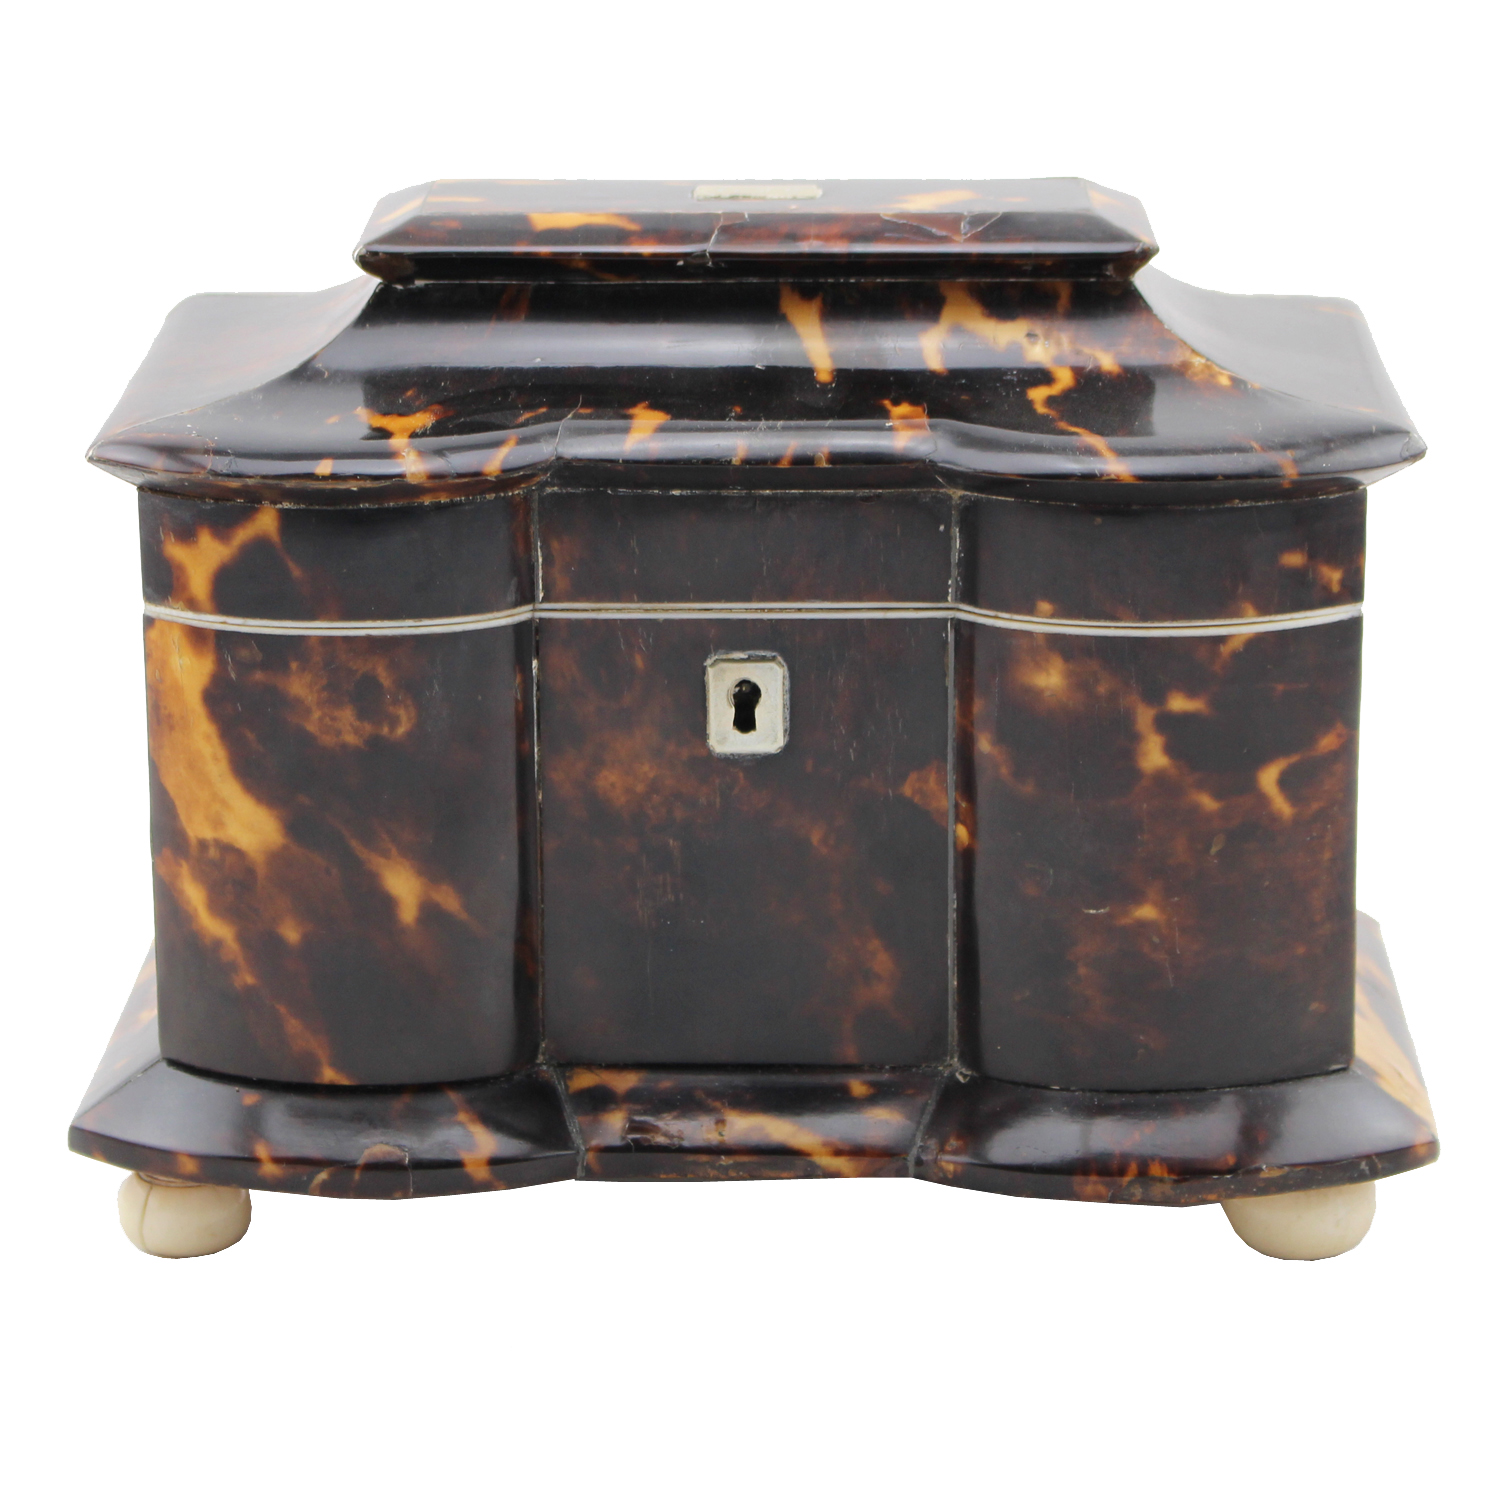 Regency Tortoiseshell Tea Caddy, Circa 1835